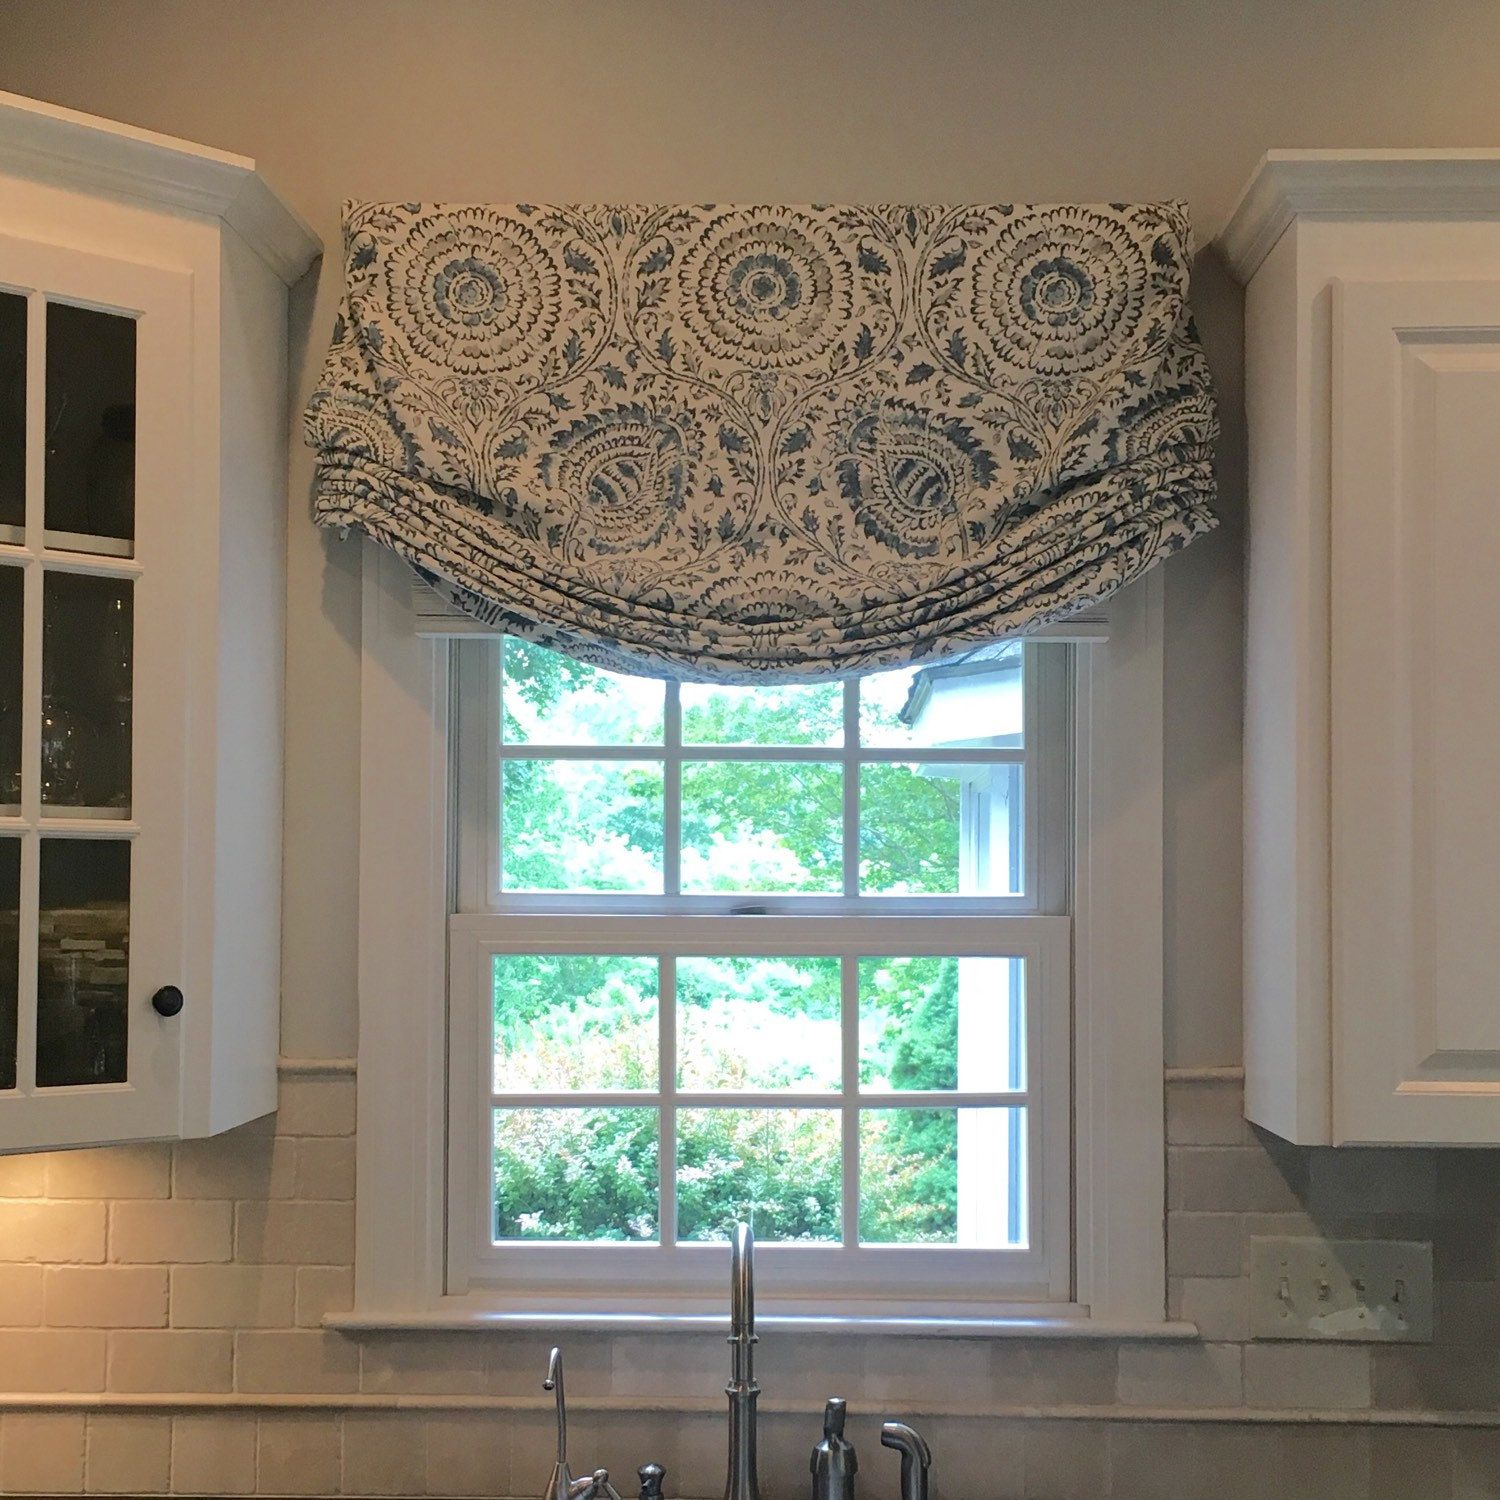 Free Shipping Relaxed Roman Shade Stationary Custom Etsy In 2020 Roman Shades Kitchen Kitchen Window Treatments Relaxed Roman Shade